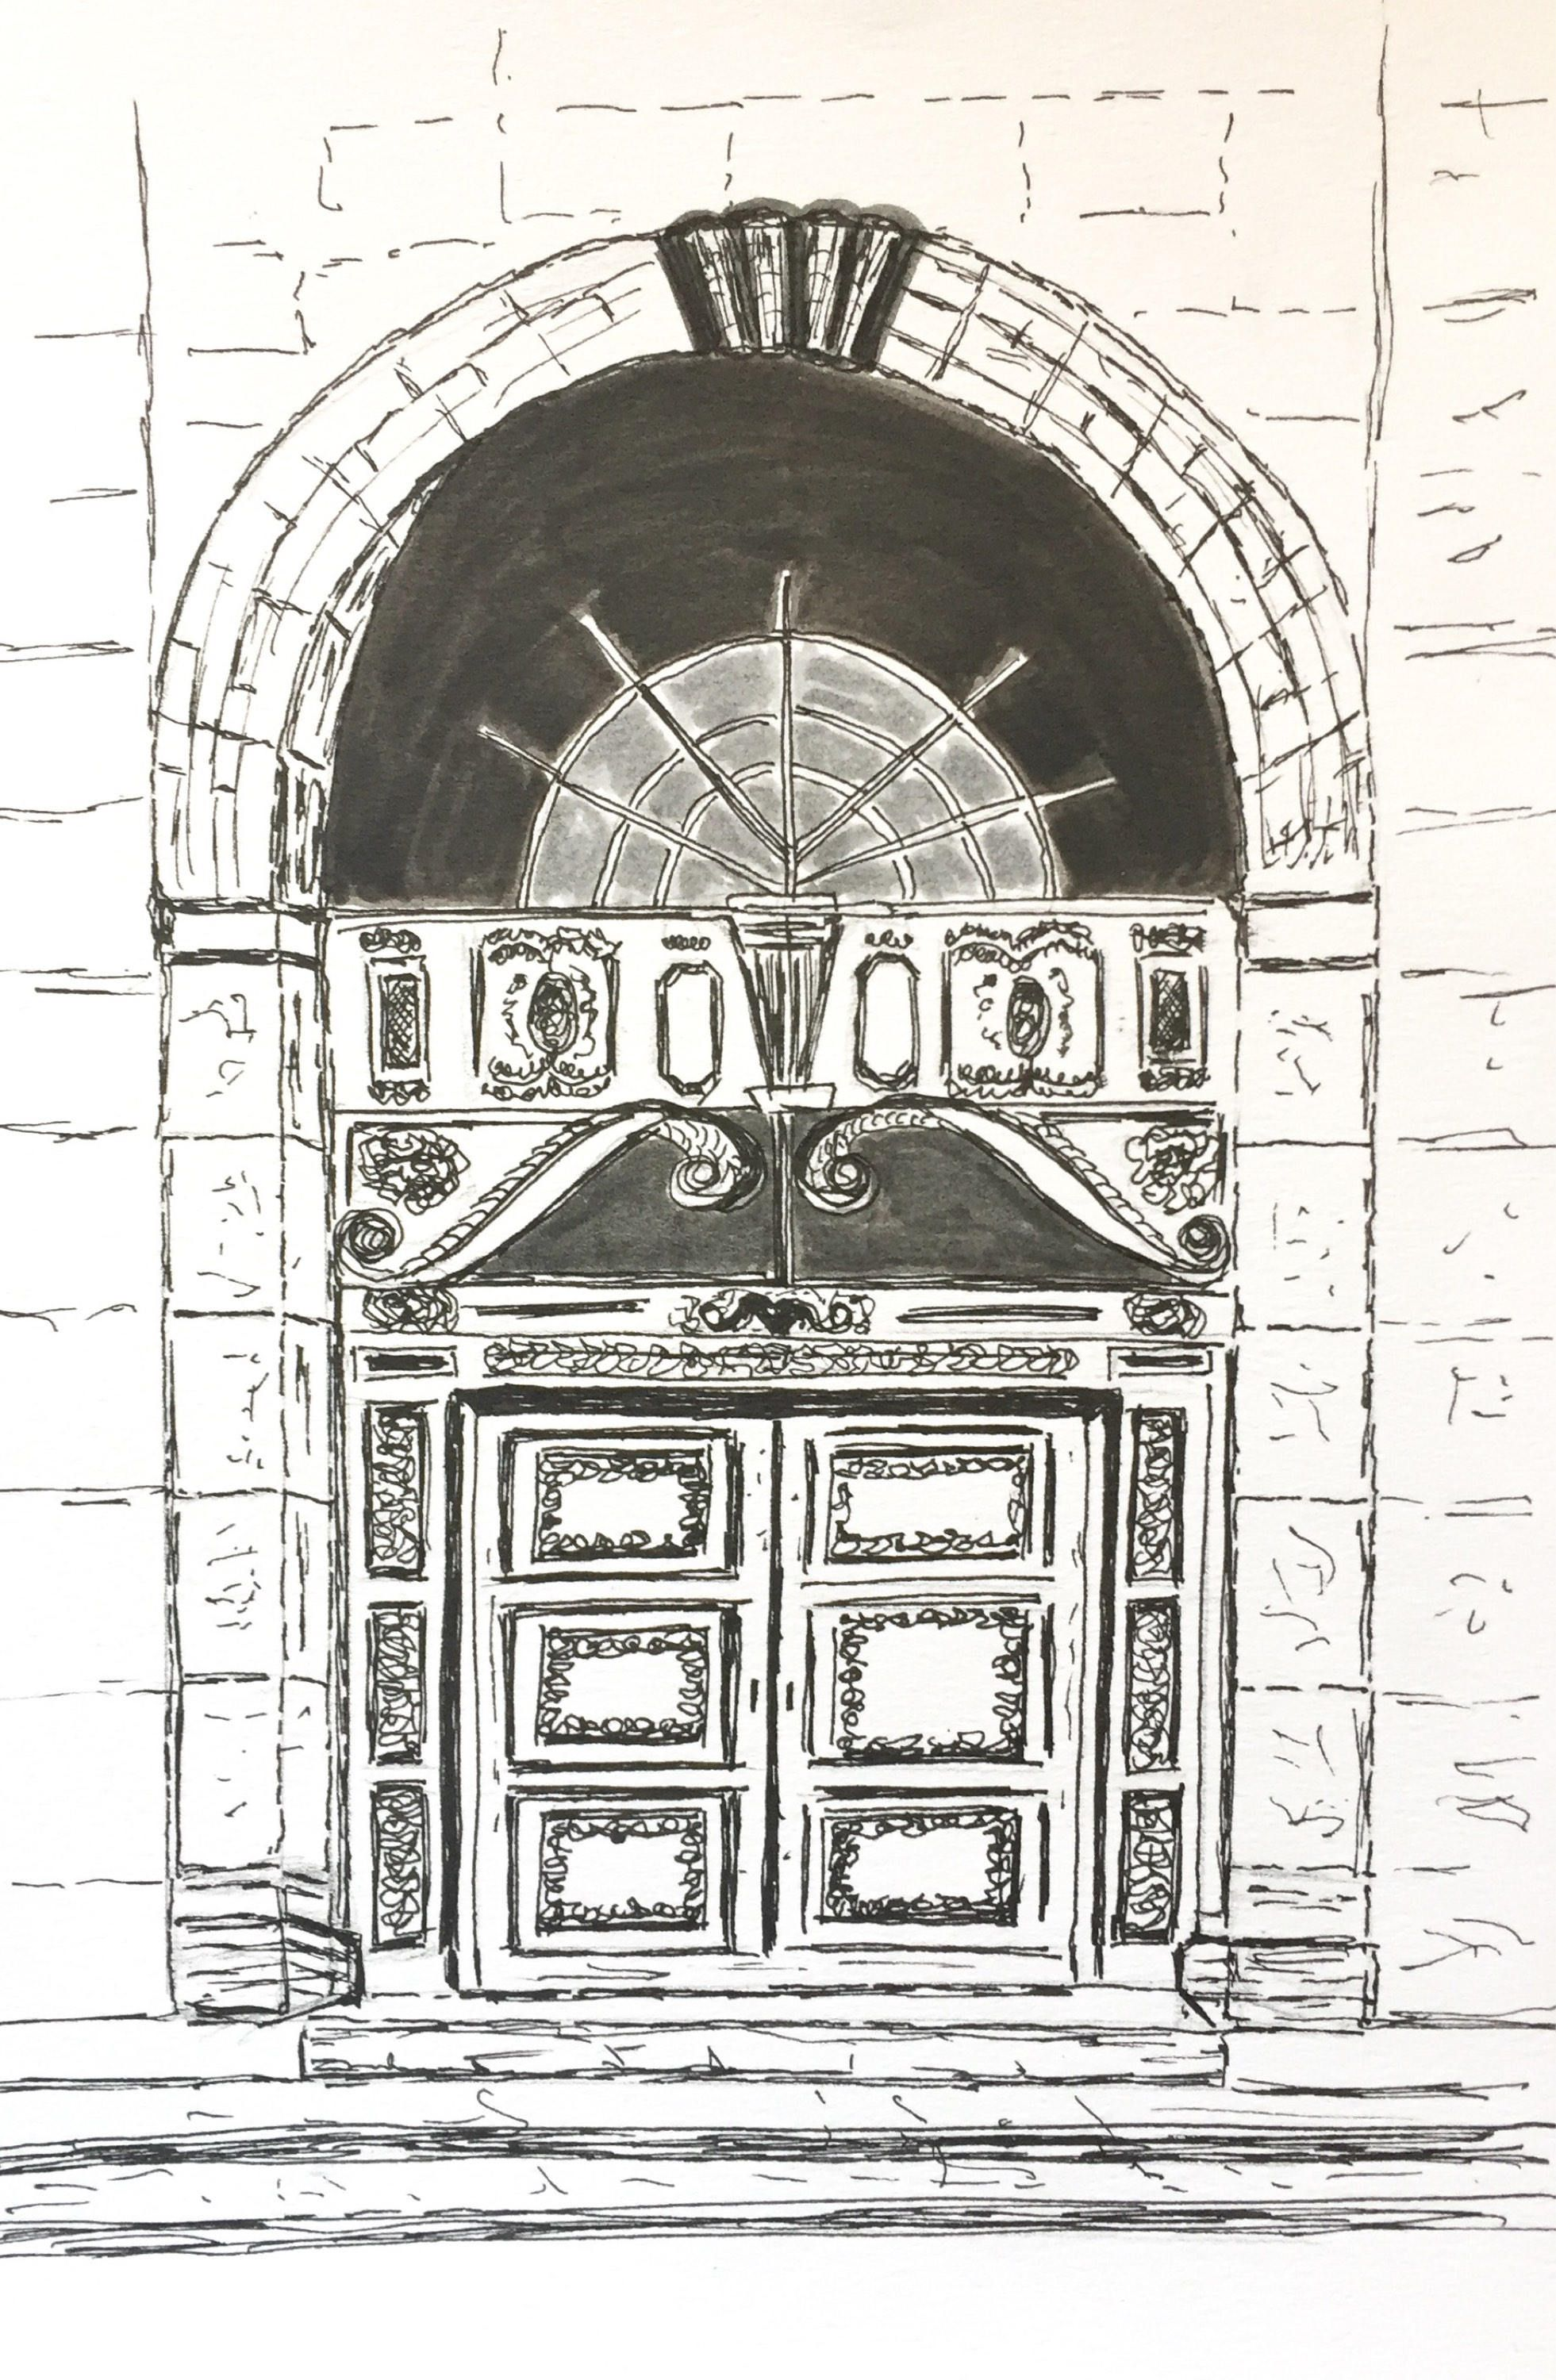 Original drawing black and white architecture art original sketch pen and ink doorway drawing europe drawing